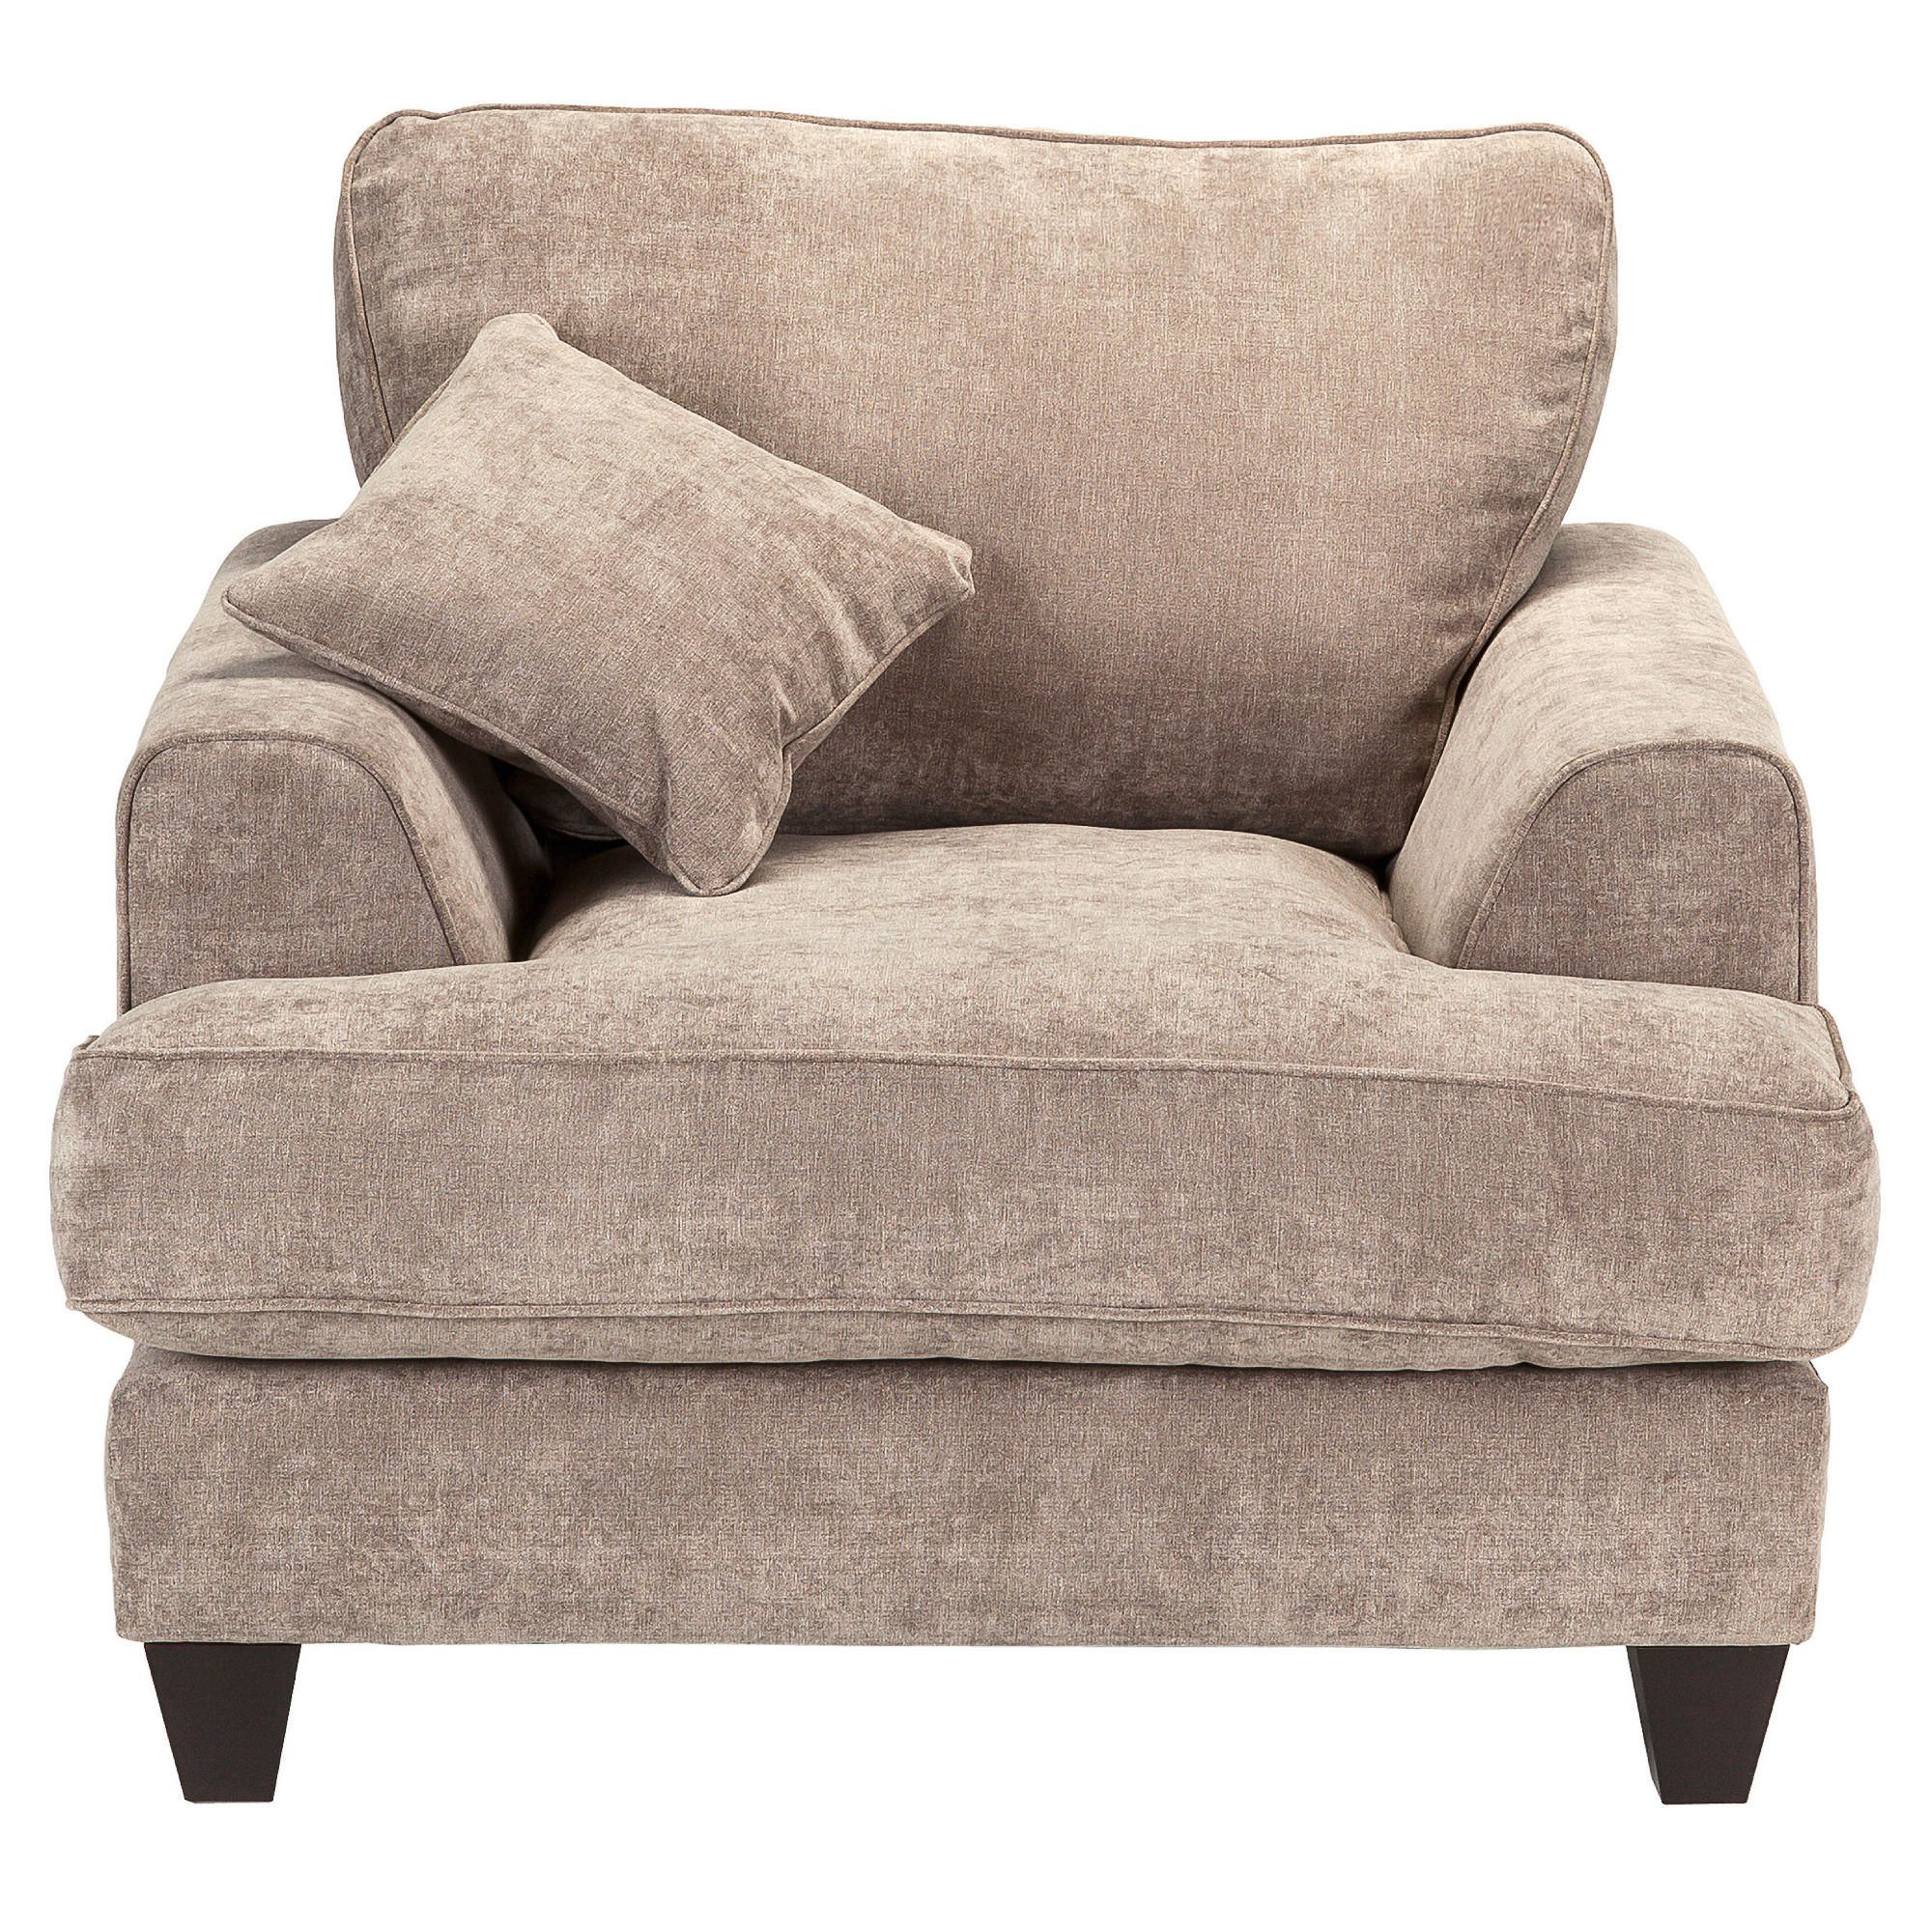 Kensington Fabric Chair Grey at Tesco Direct